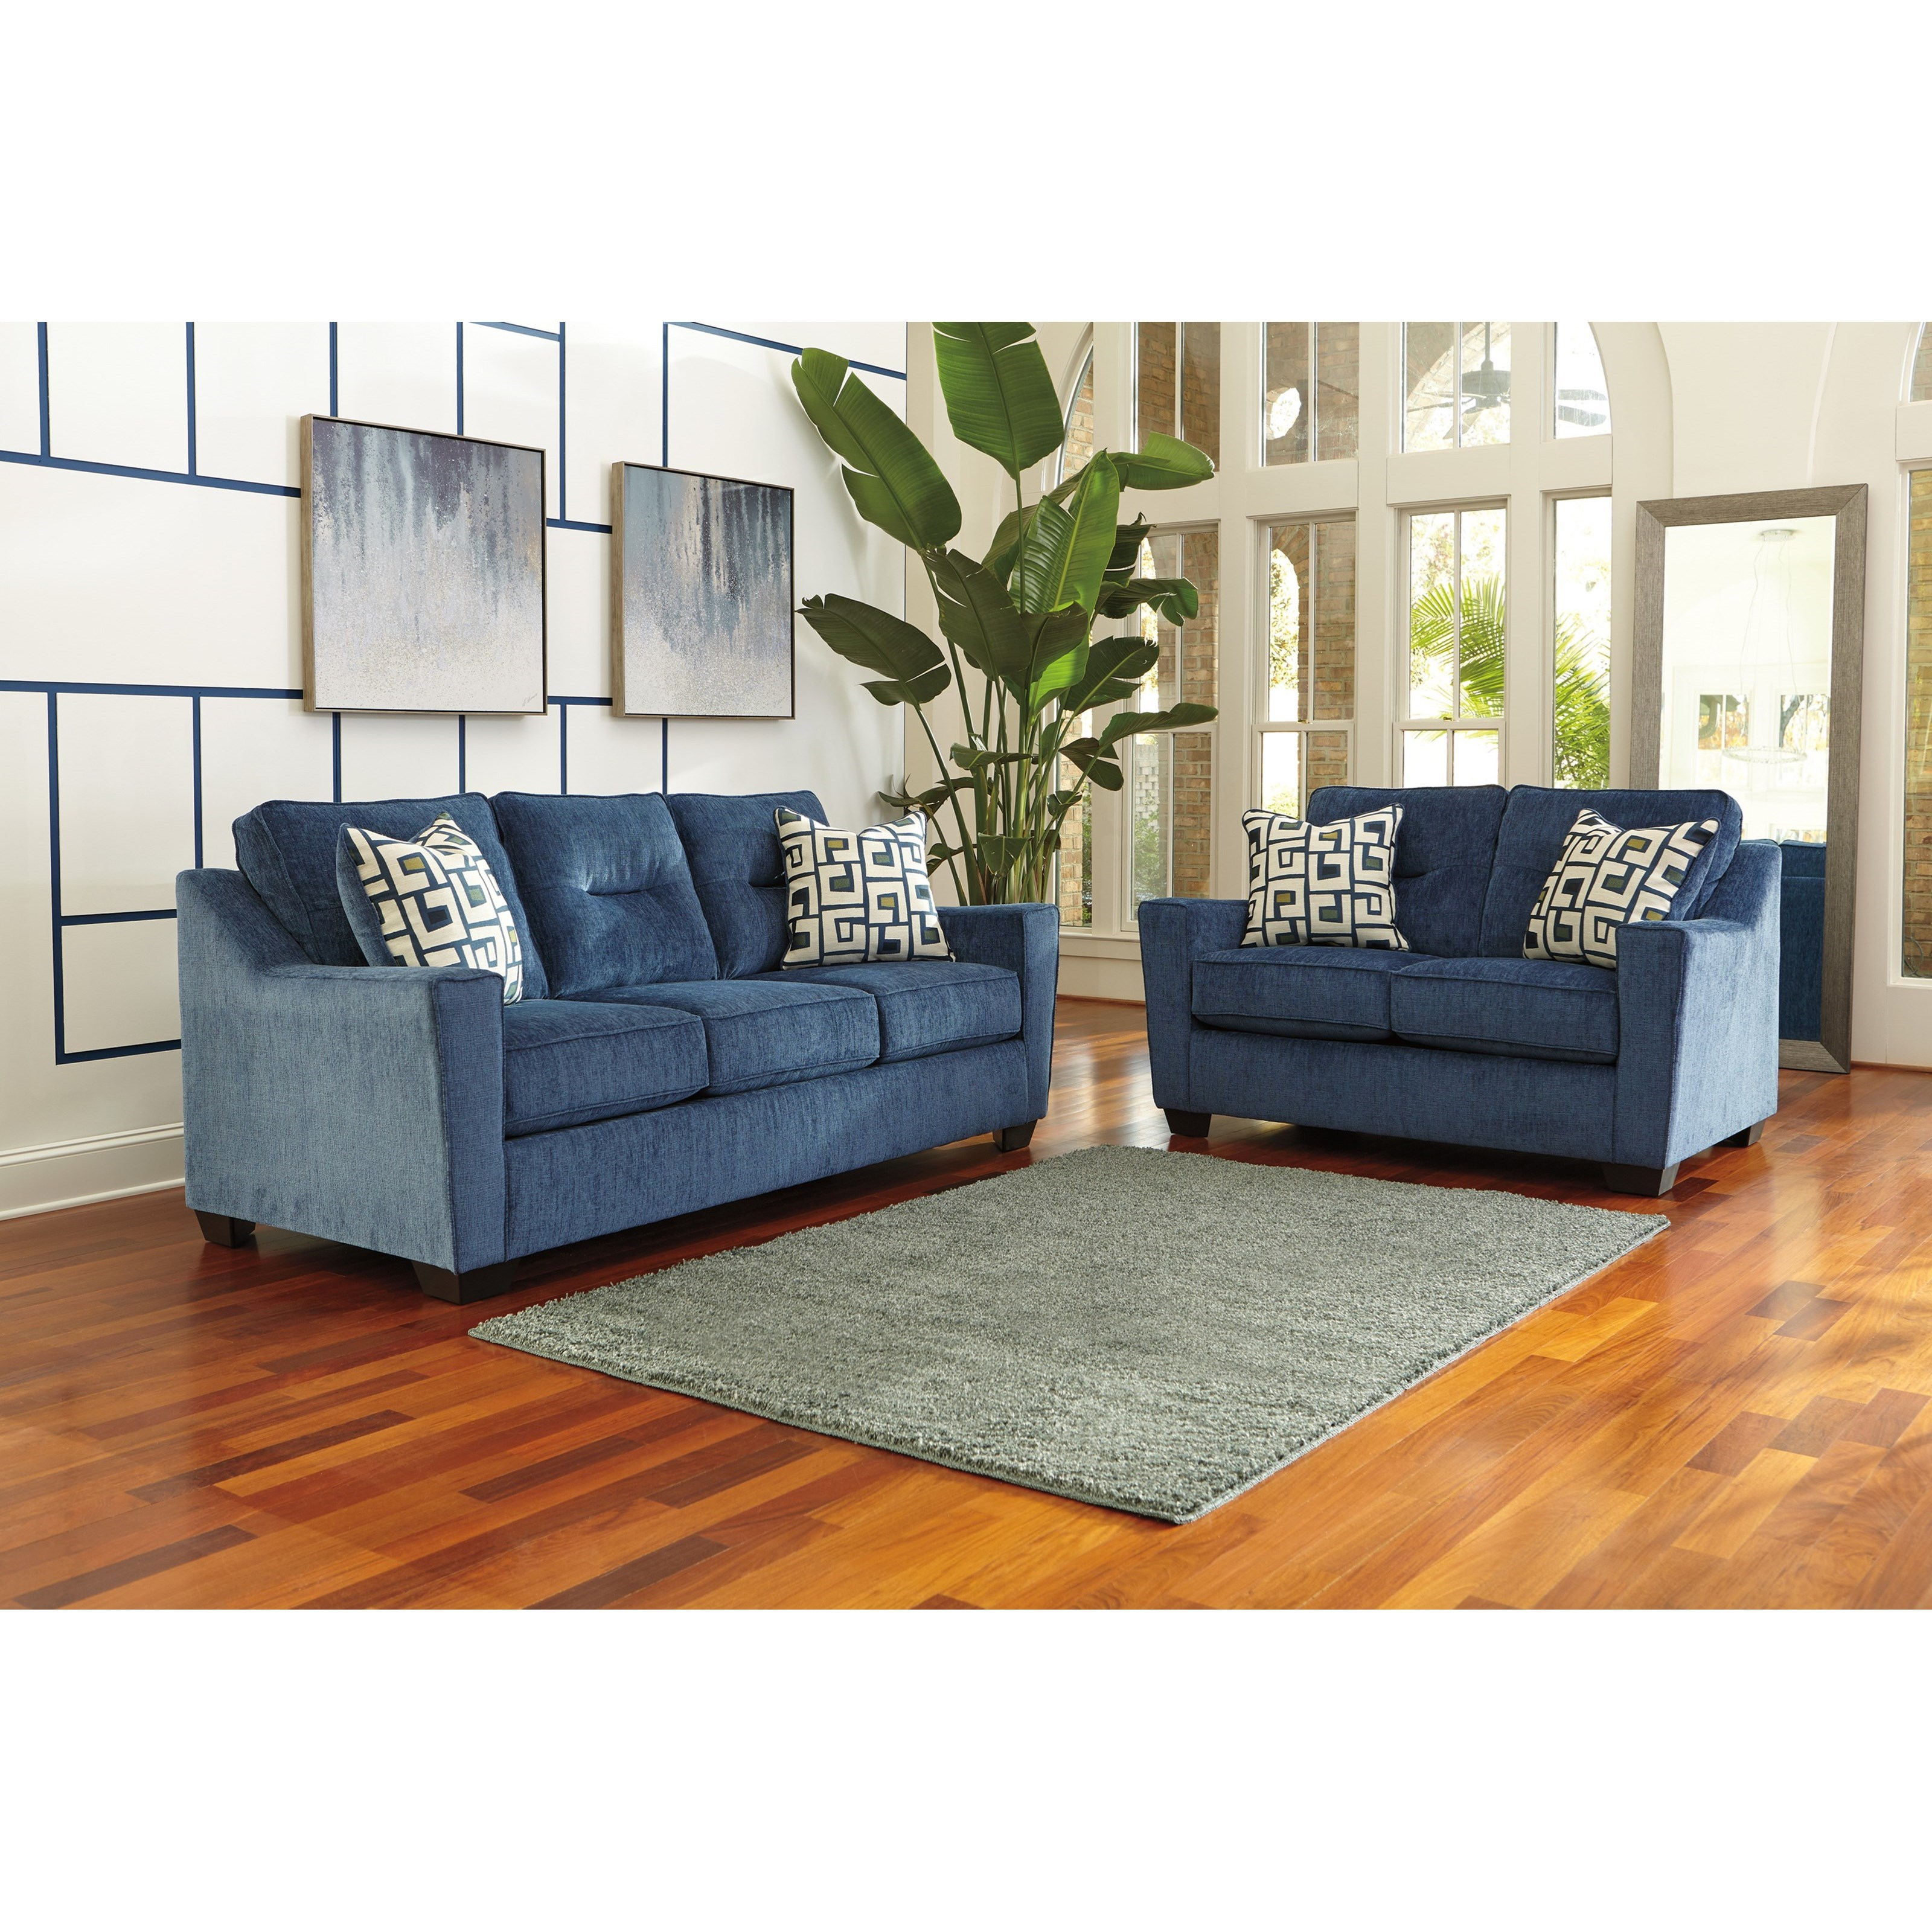 Ashley Furniture Cerdic Stationary Living Room Group